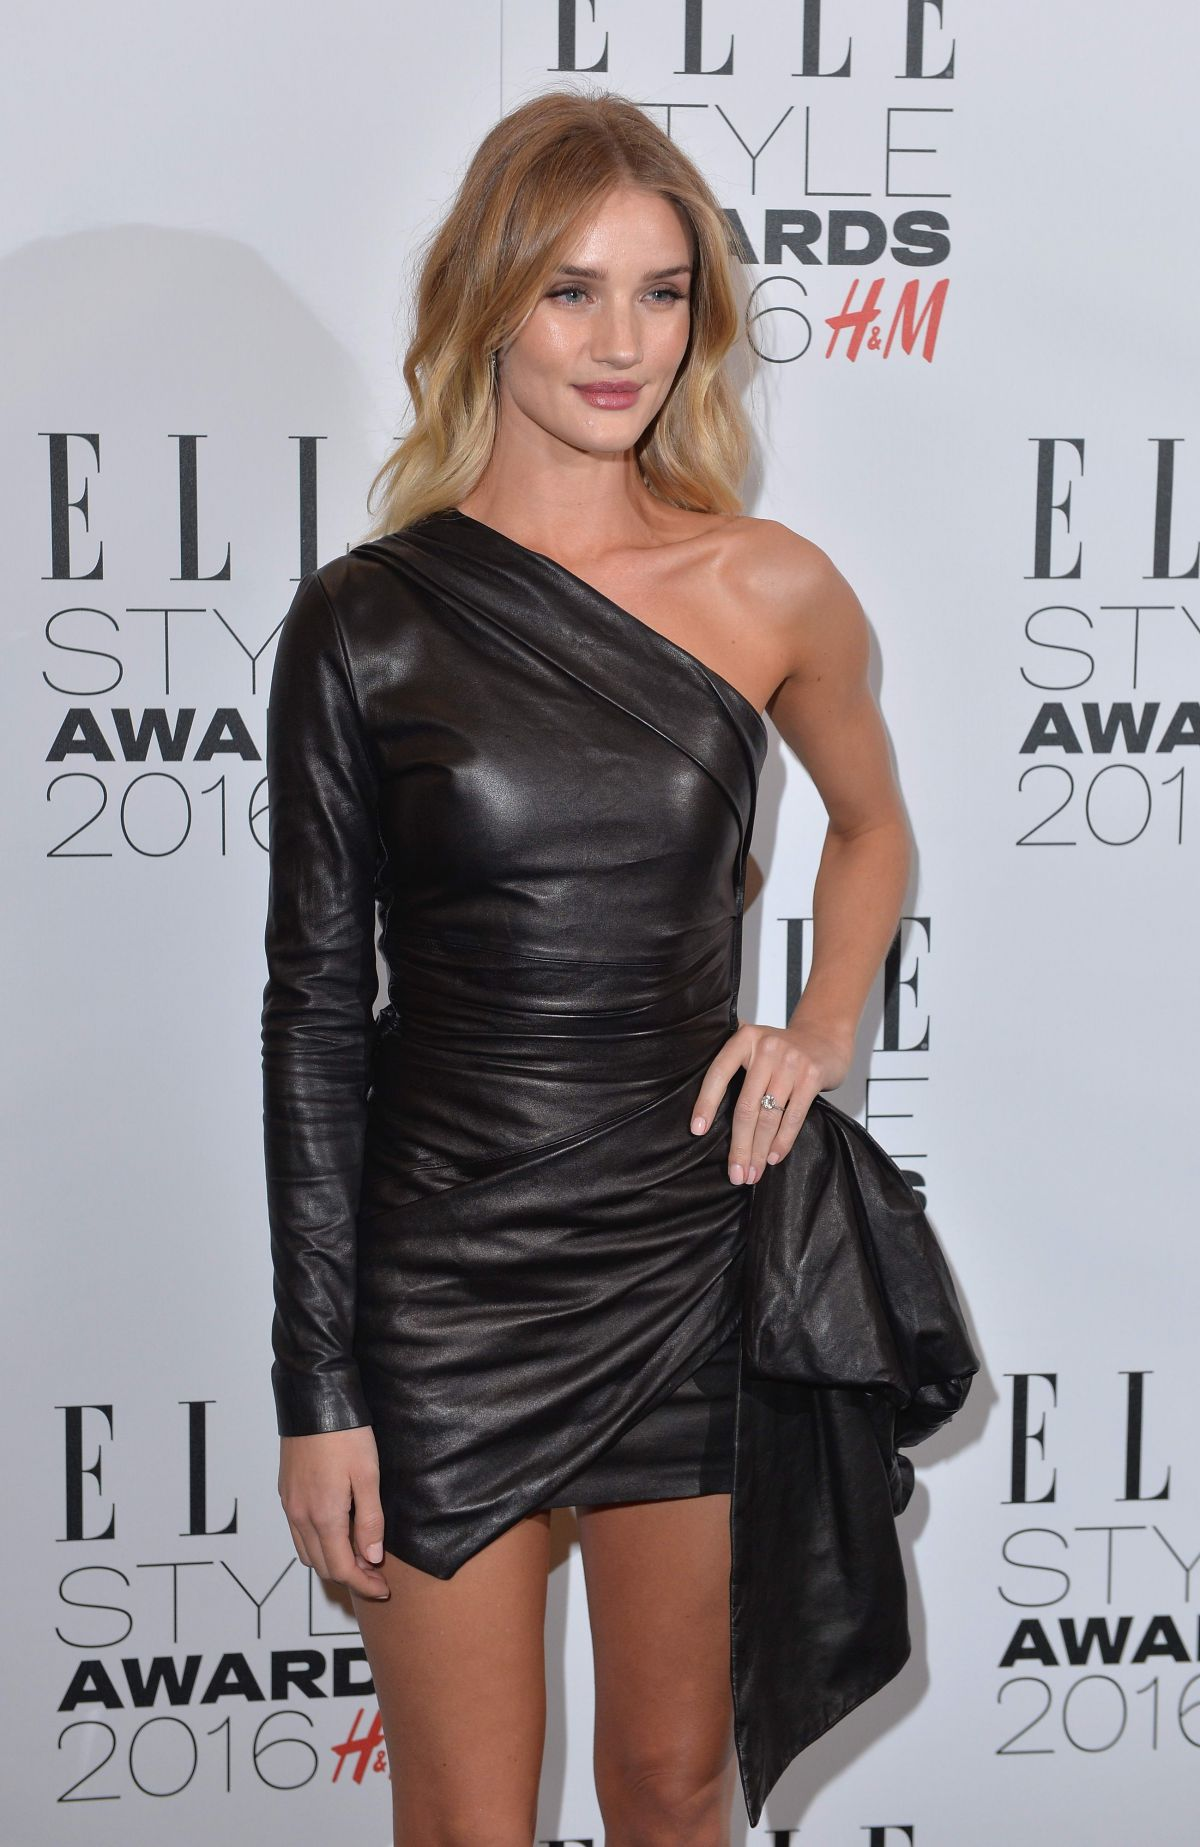 ROSIE HUNTINGTON-WHITELEY at Elle Style Awards in London 02/23/2016